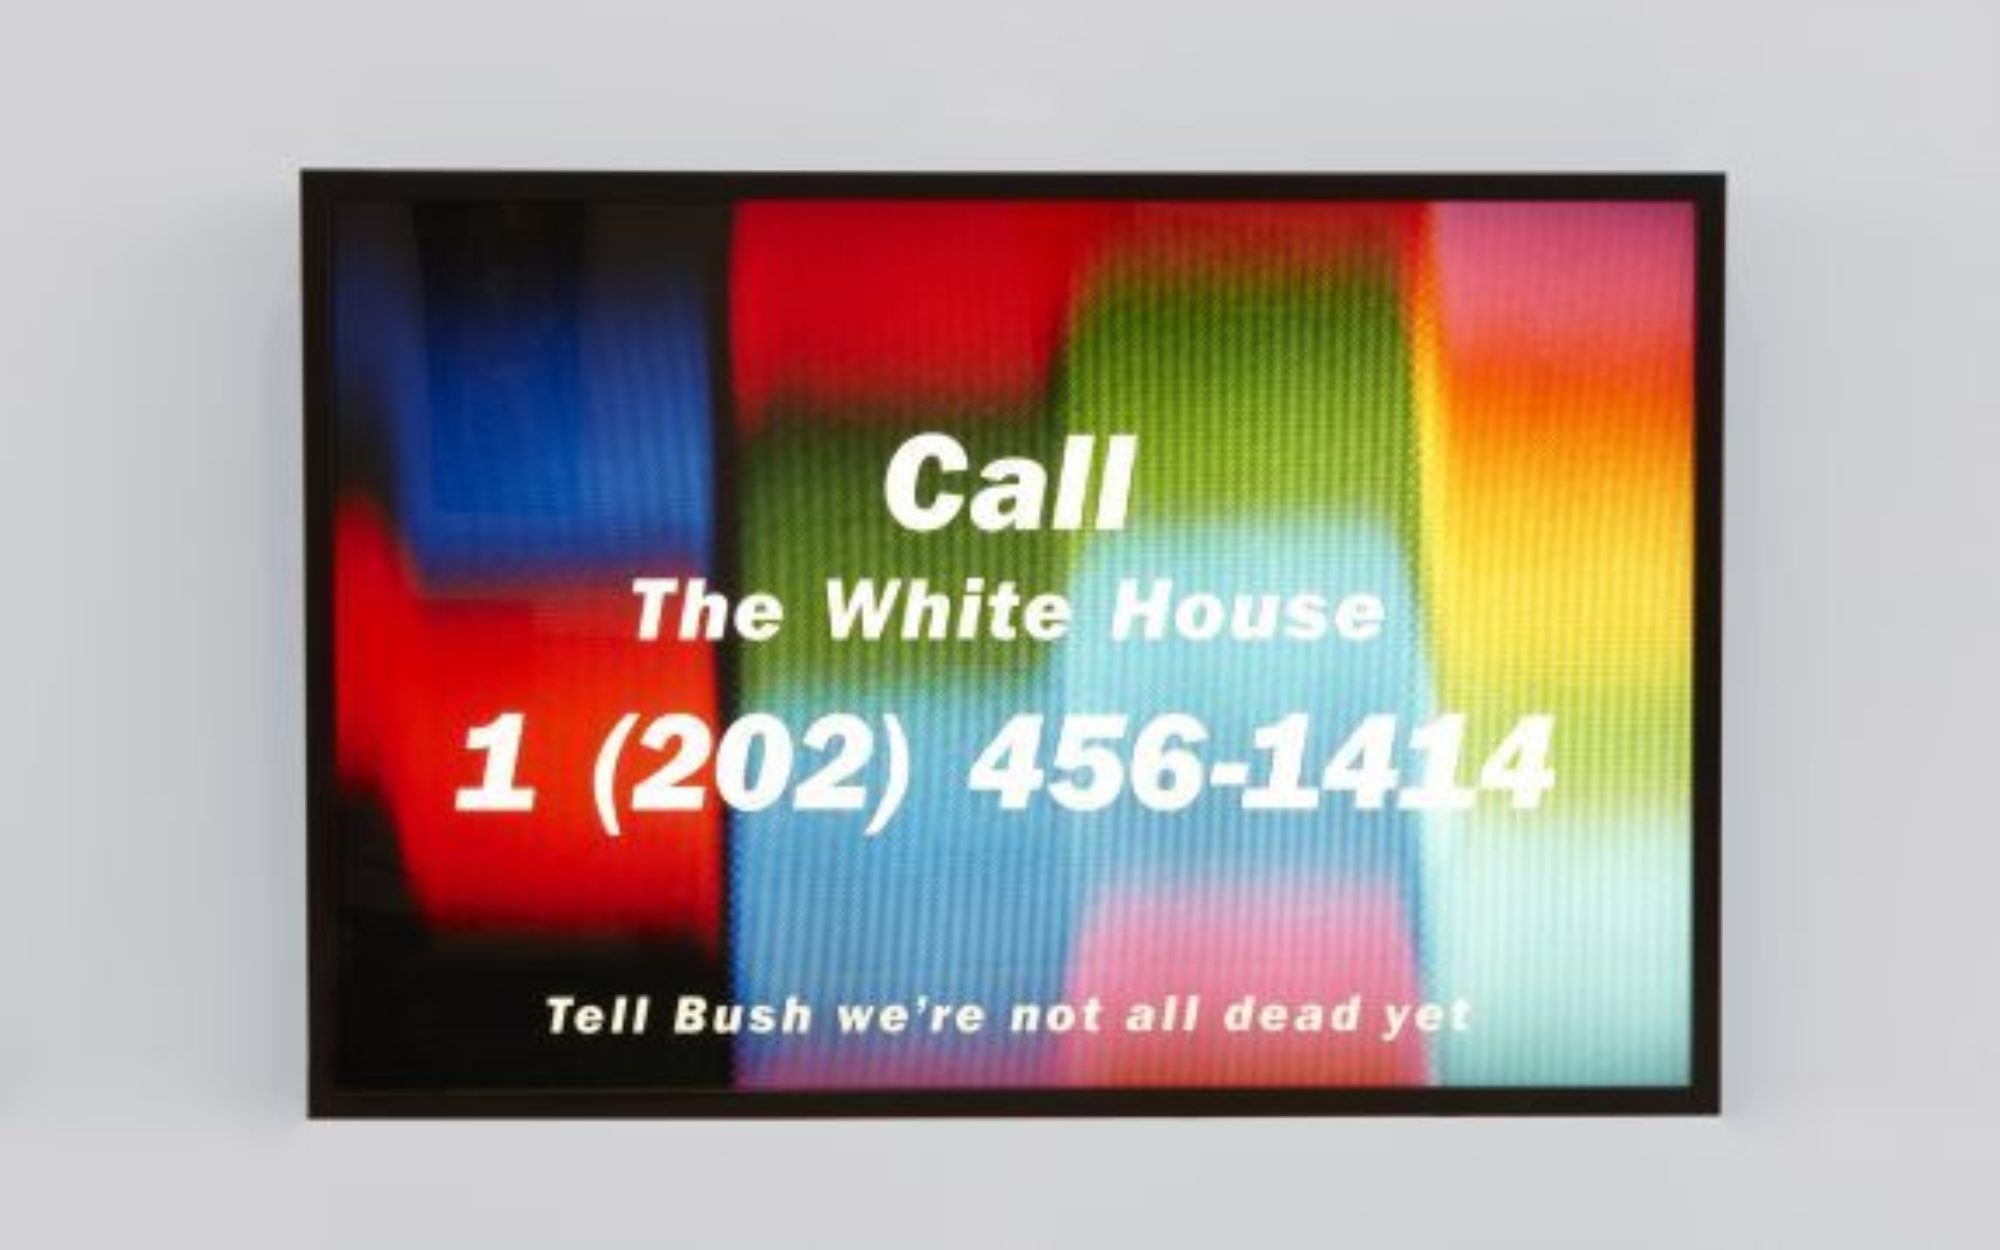 """Colorful image with white text reading """"Call The White House, 1 (2020) 456-1414, Tell Bush we're not all dead yet"""